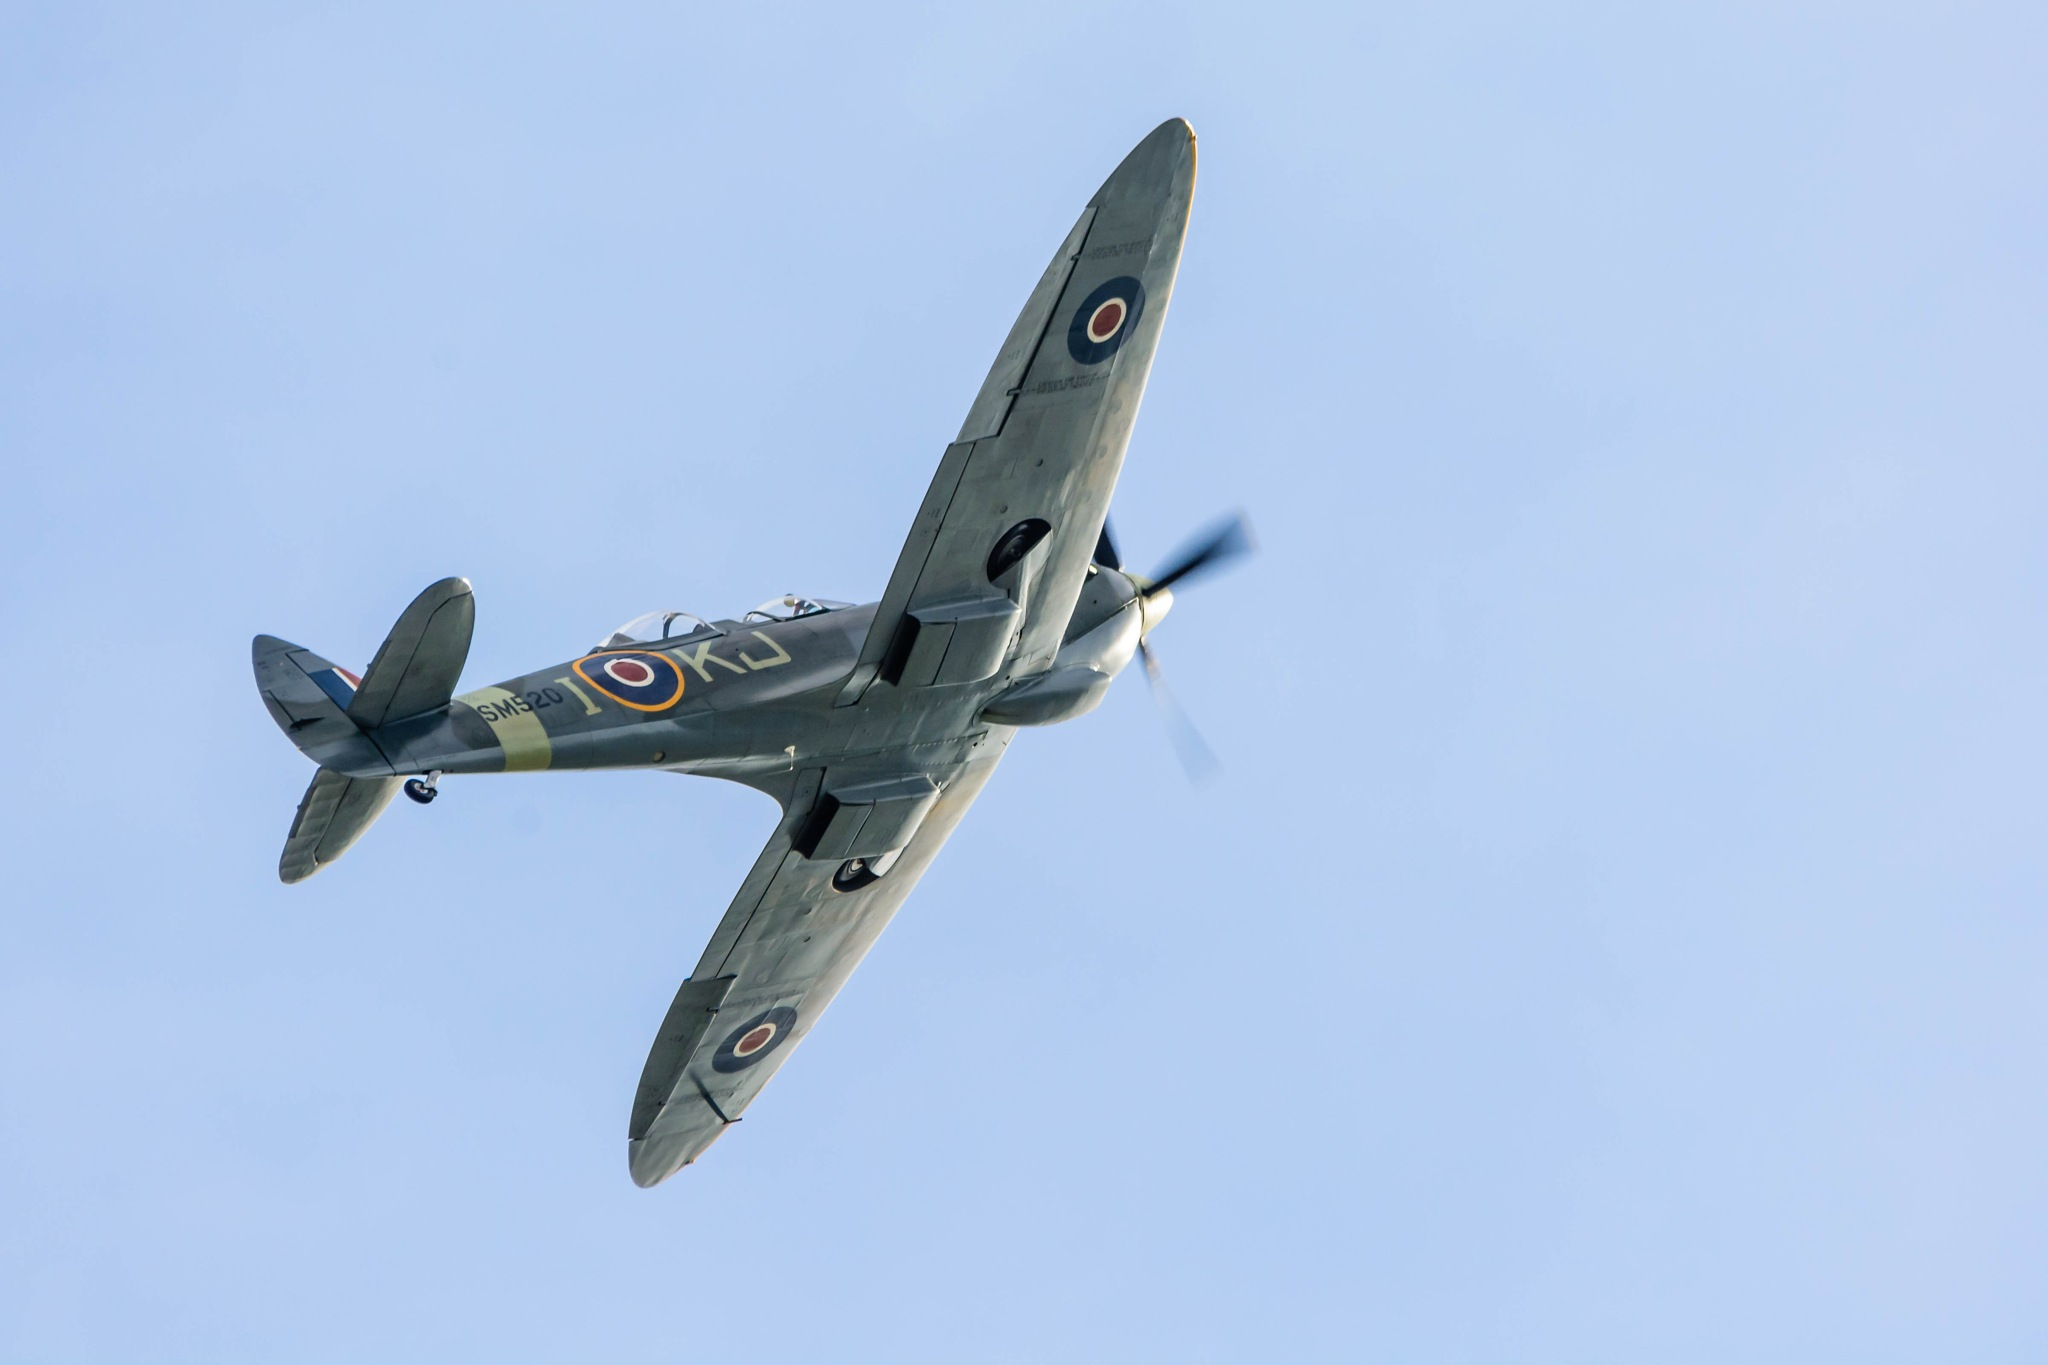 Spitfire by Stephen Hammond